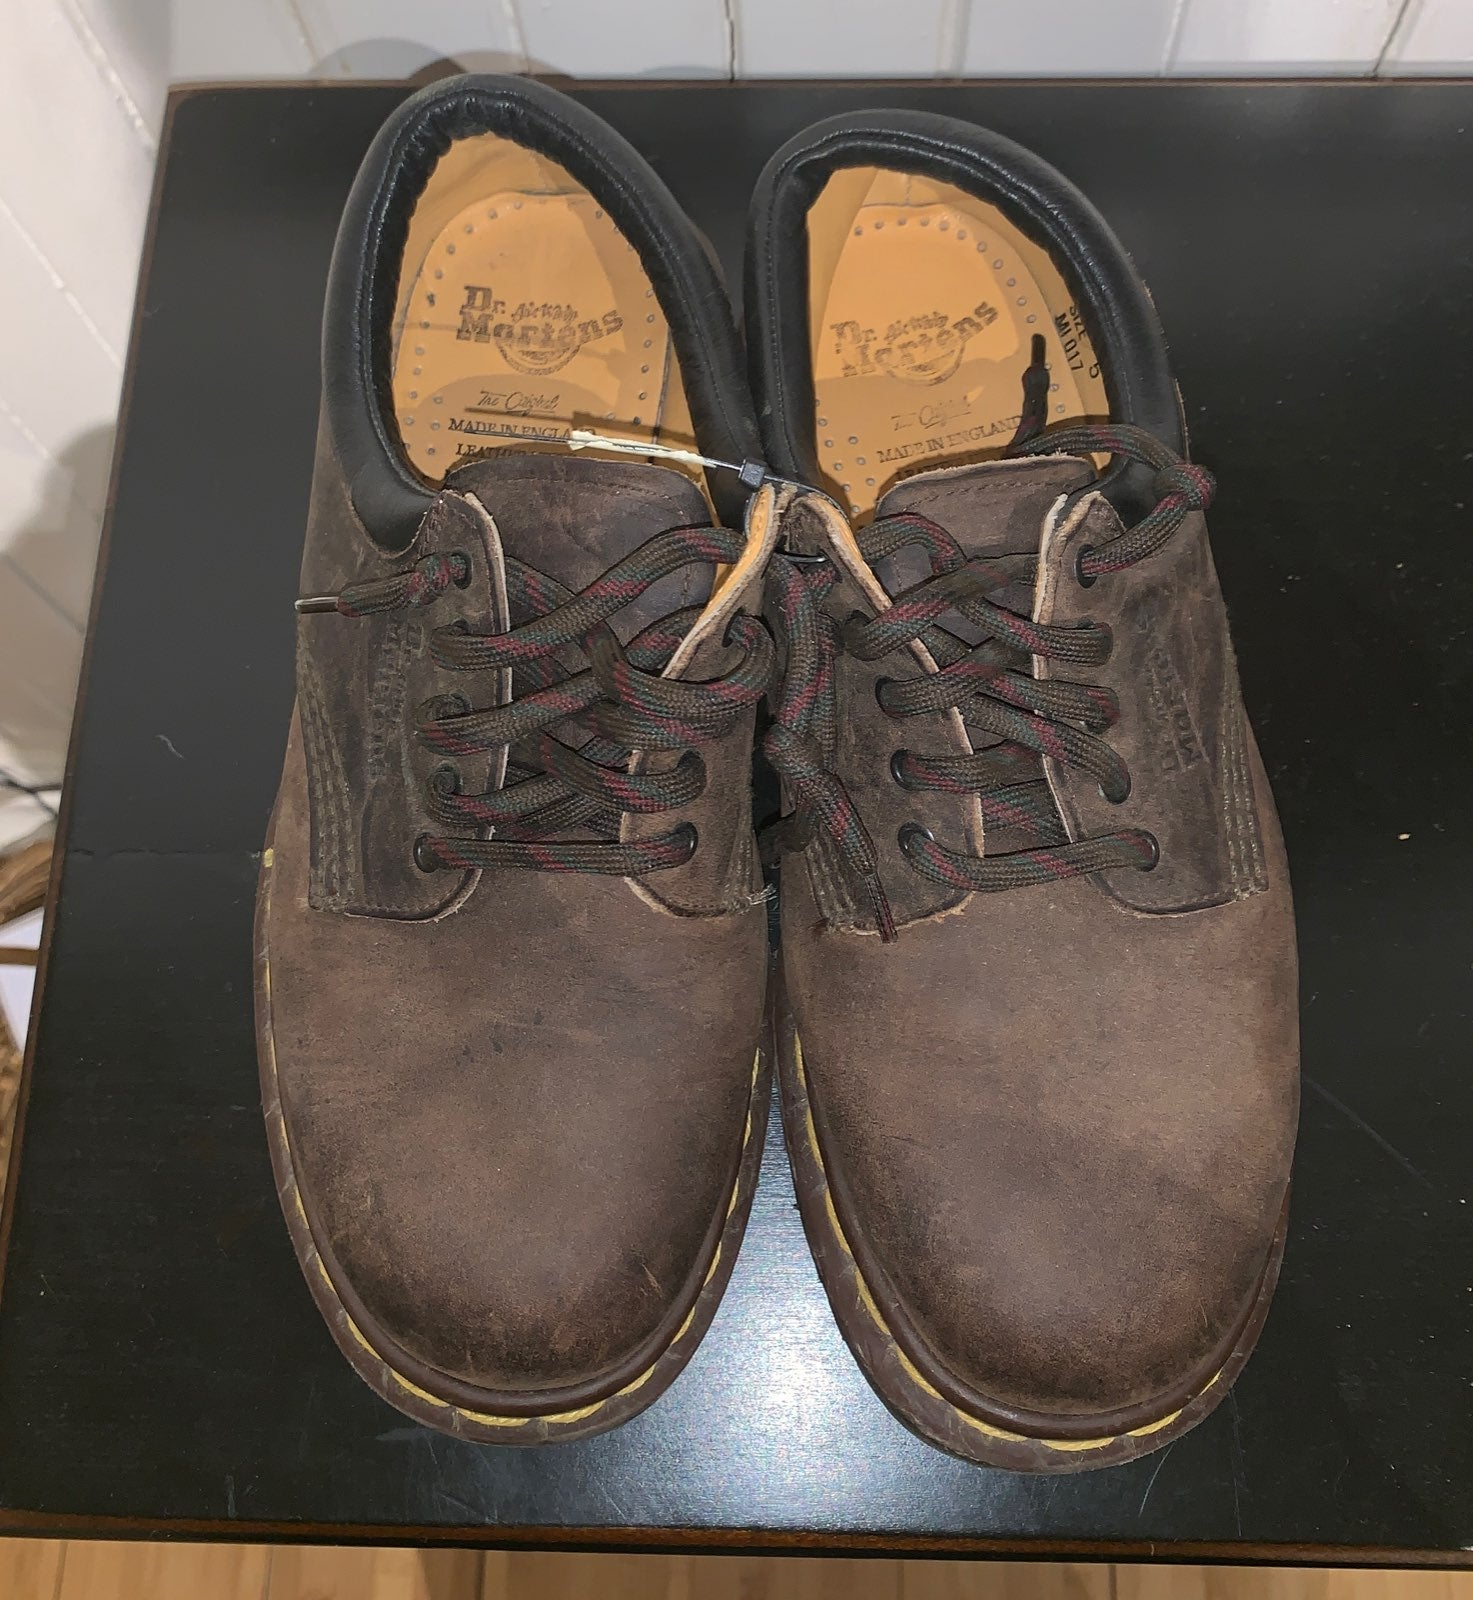 Shoes by Dr. Martens